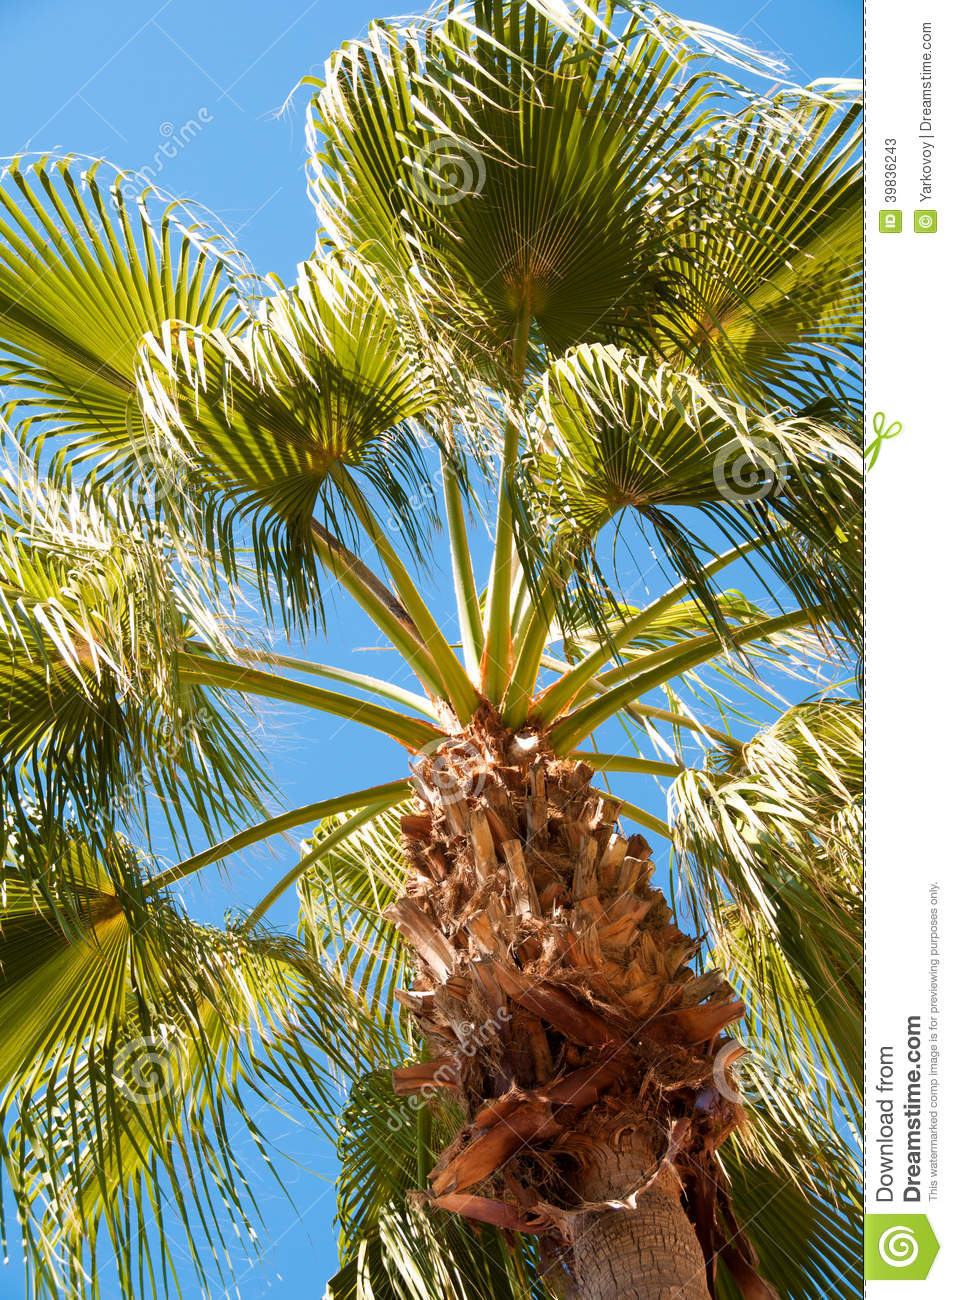 palm tree krone branches - photo #16